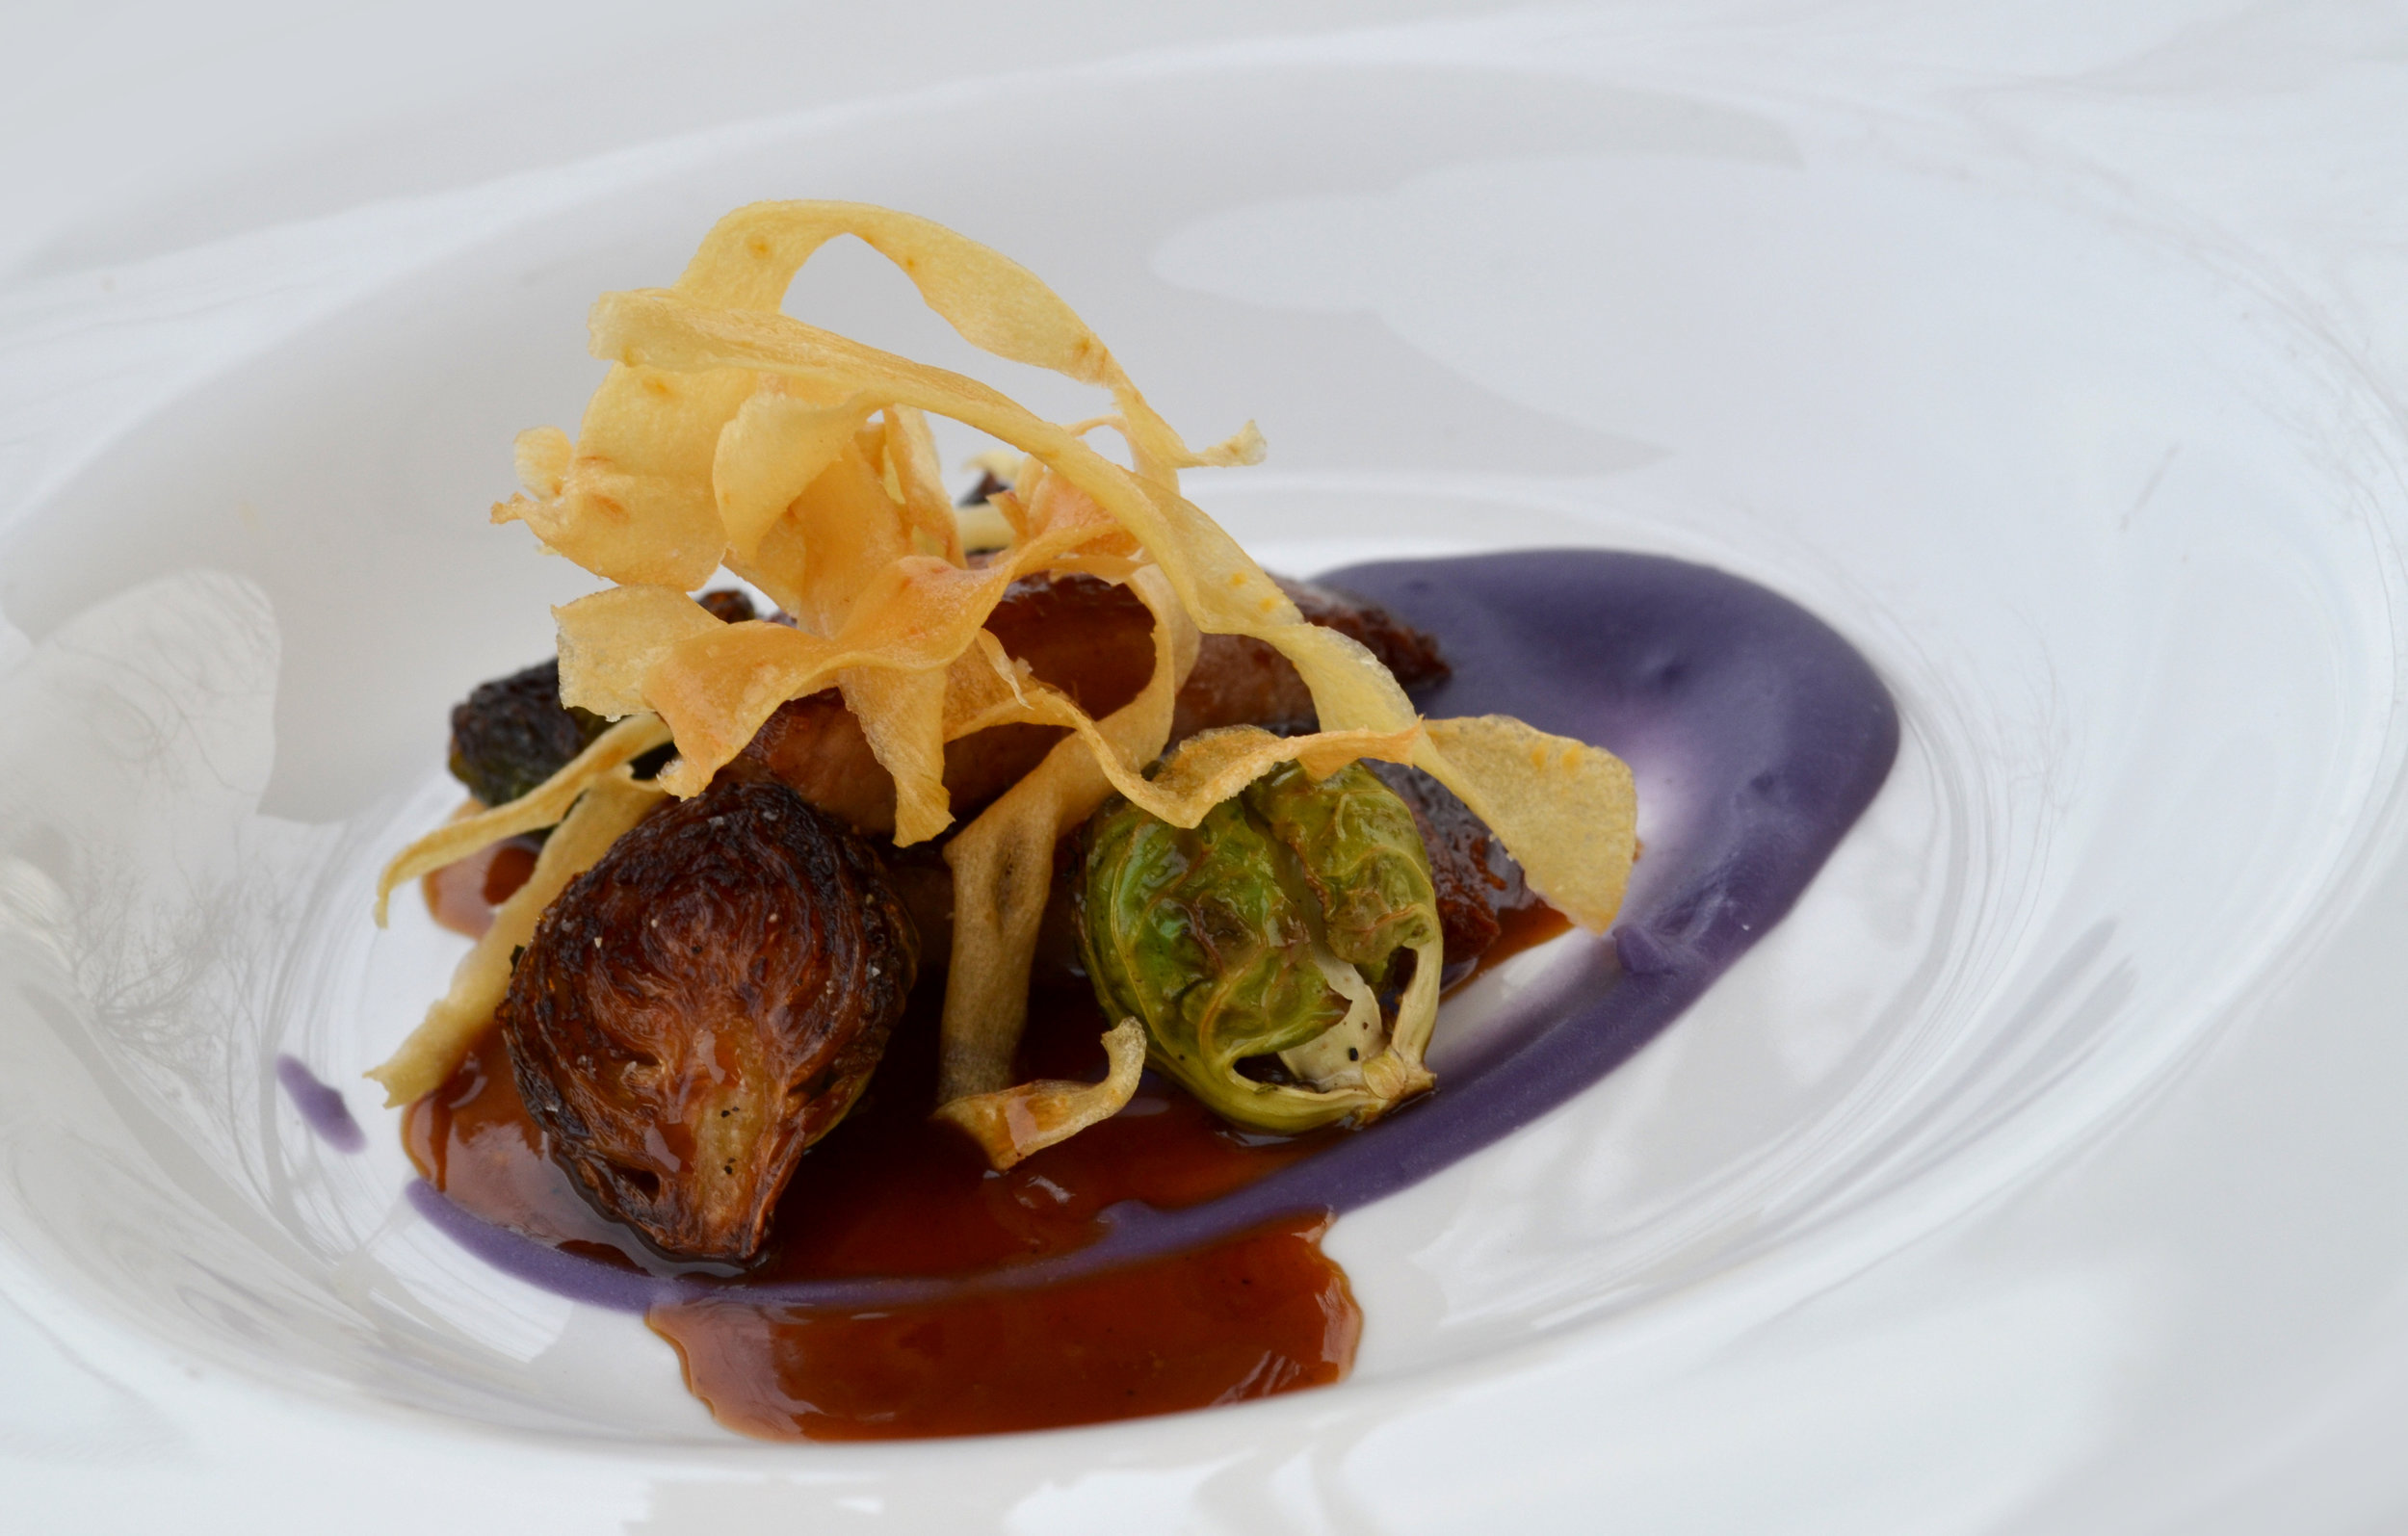 The finished Braised Kurobuta Pork with Okinawan Sweet Potatoes and Brussels Sprouts